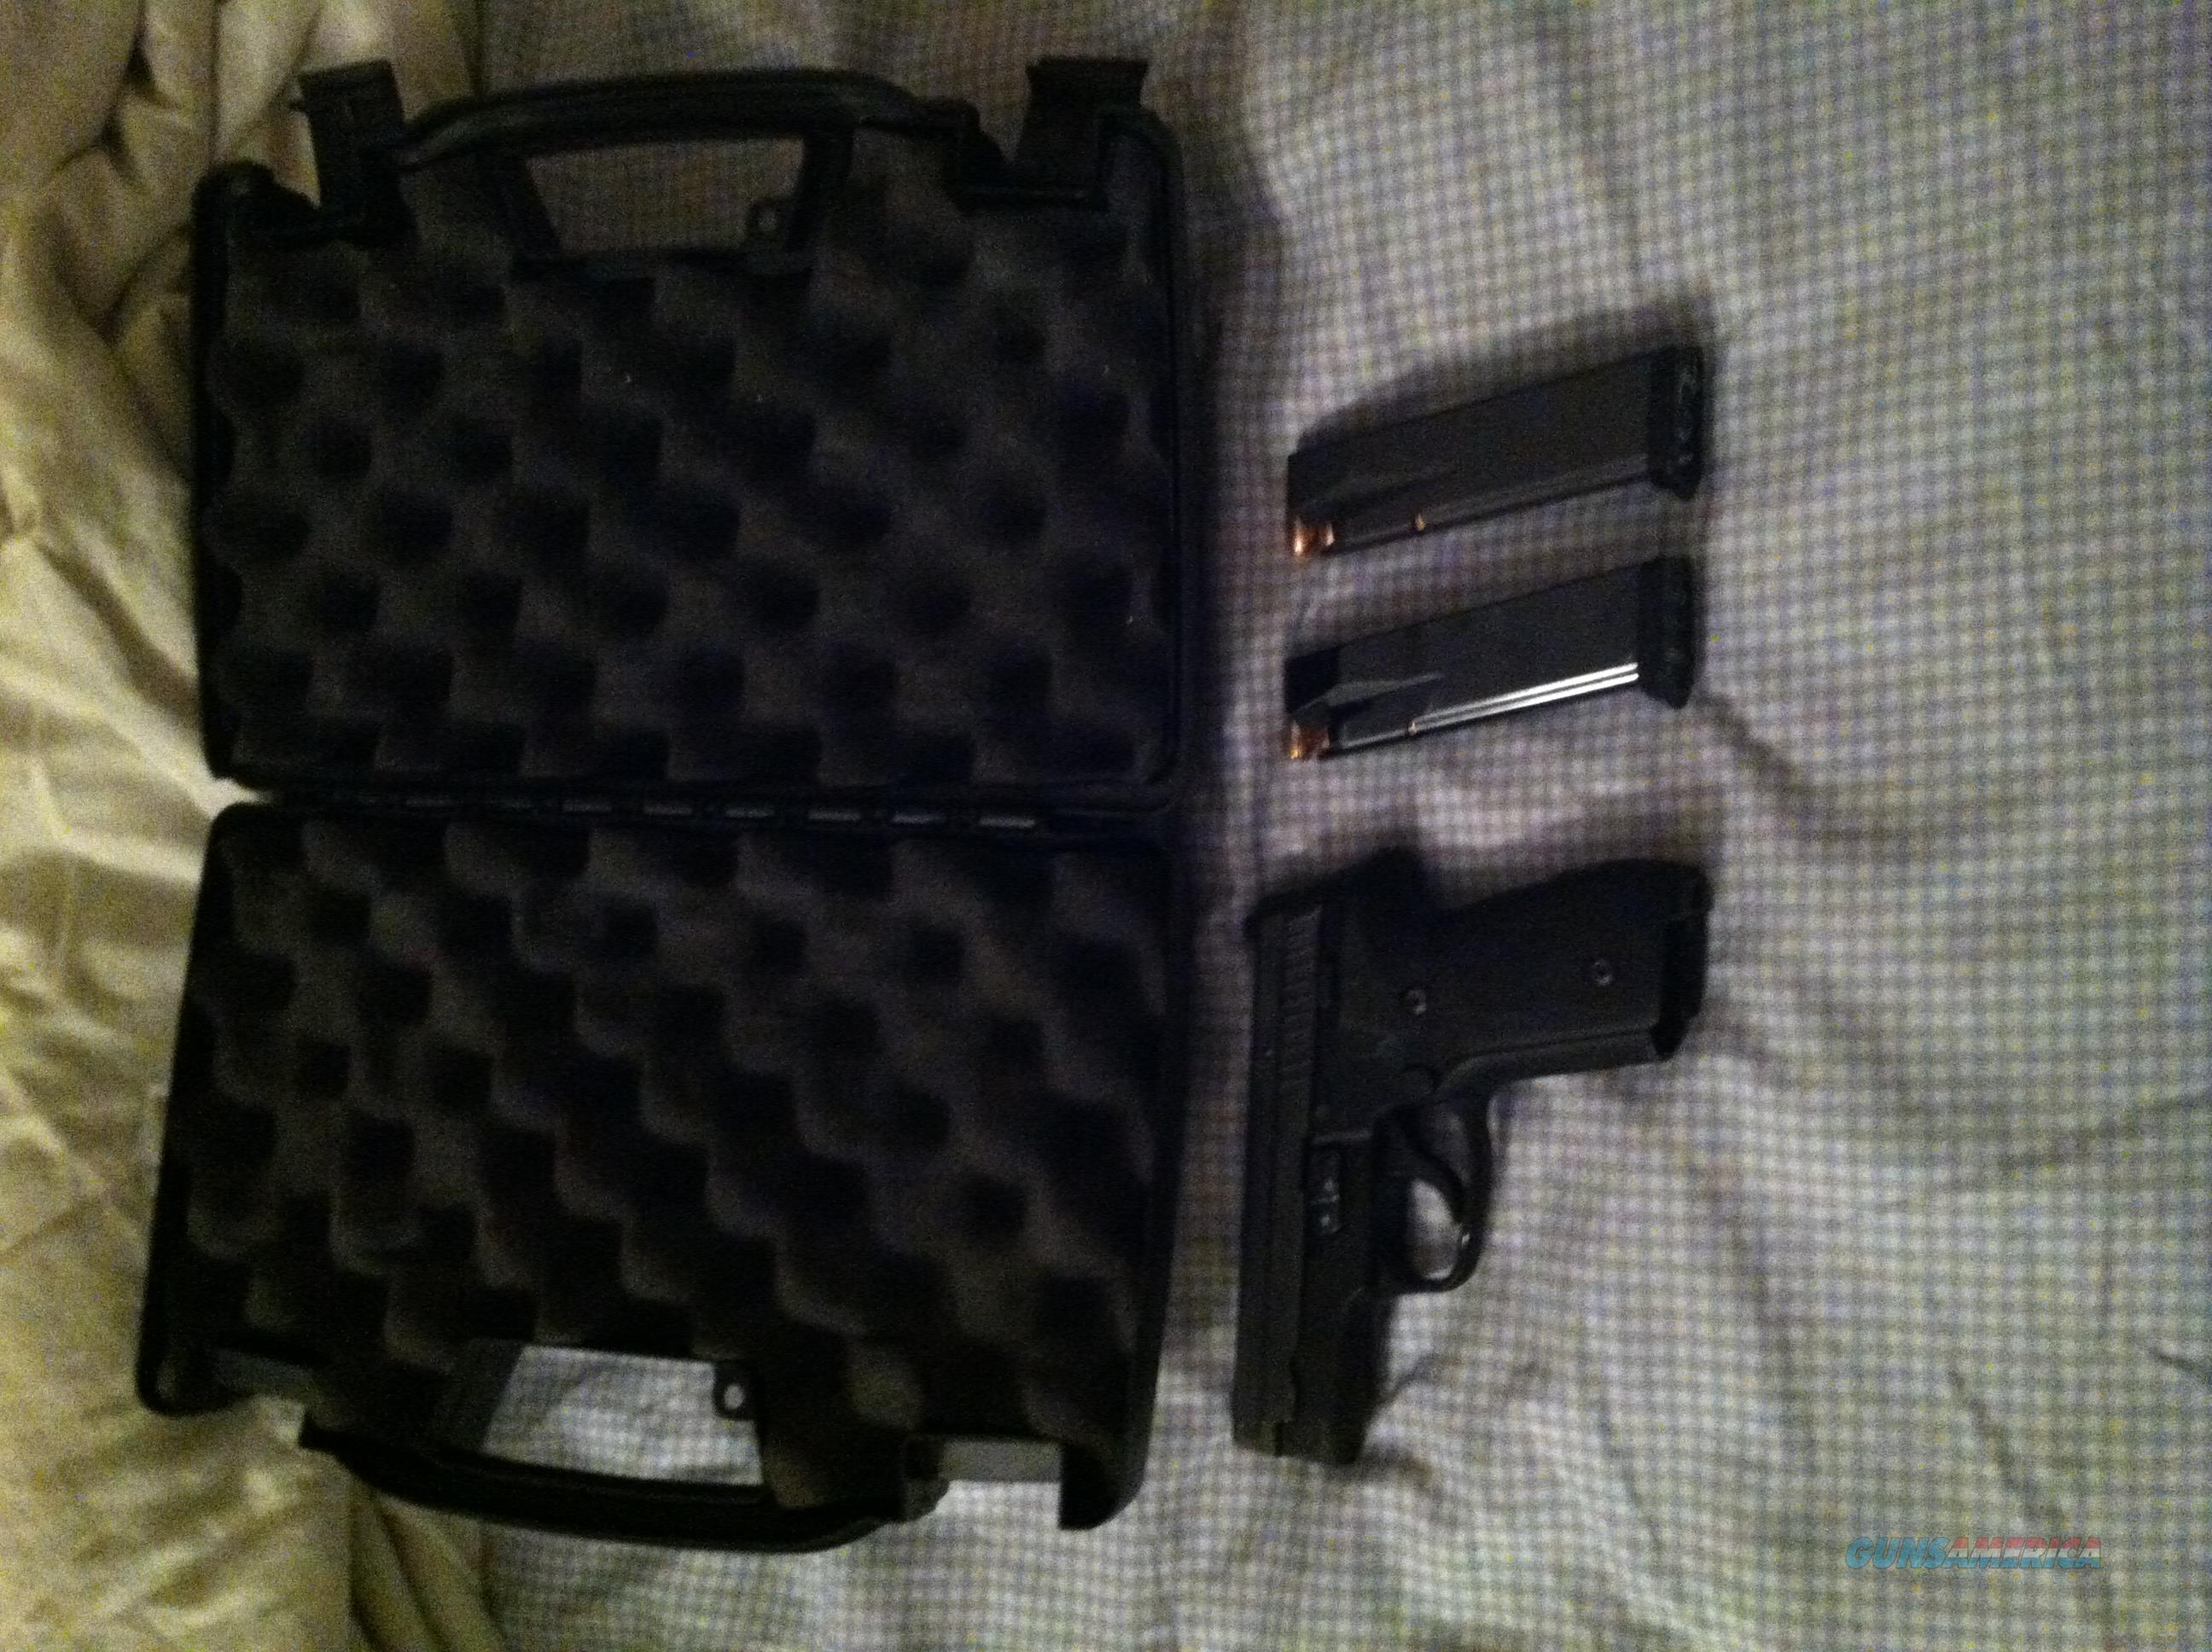 P229, .40, Kept in an armory  Guns > Pistols > Sig - Sauer/Sigarms Pistols > P229